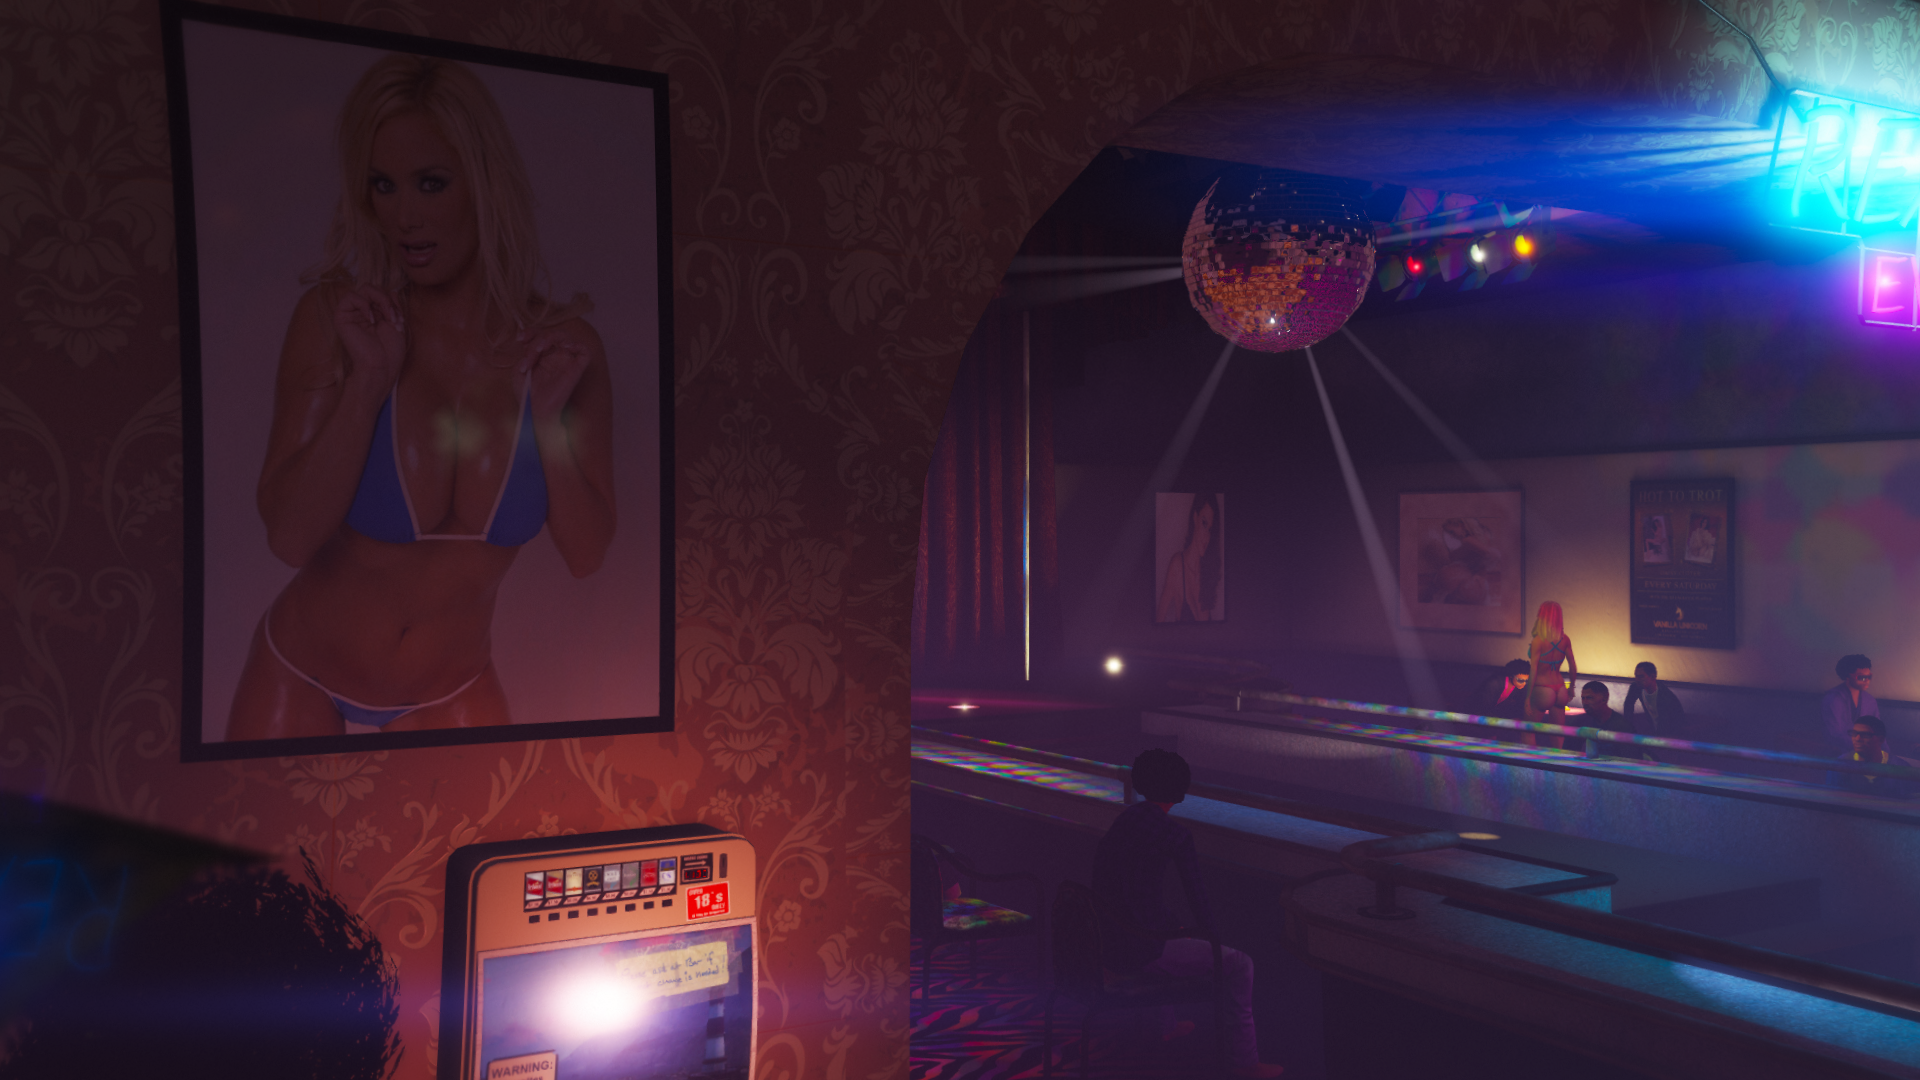 Are new rules for chicago's strip clubs coming